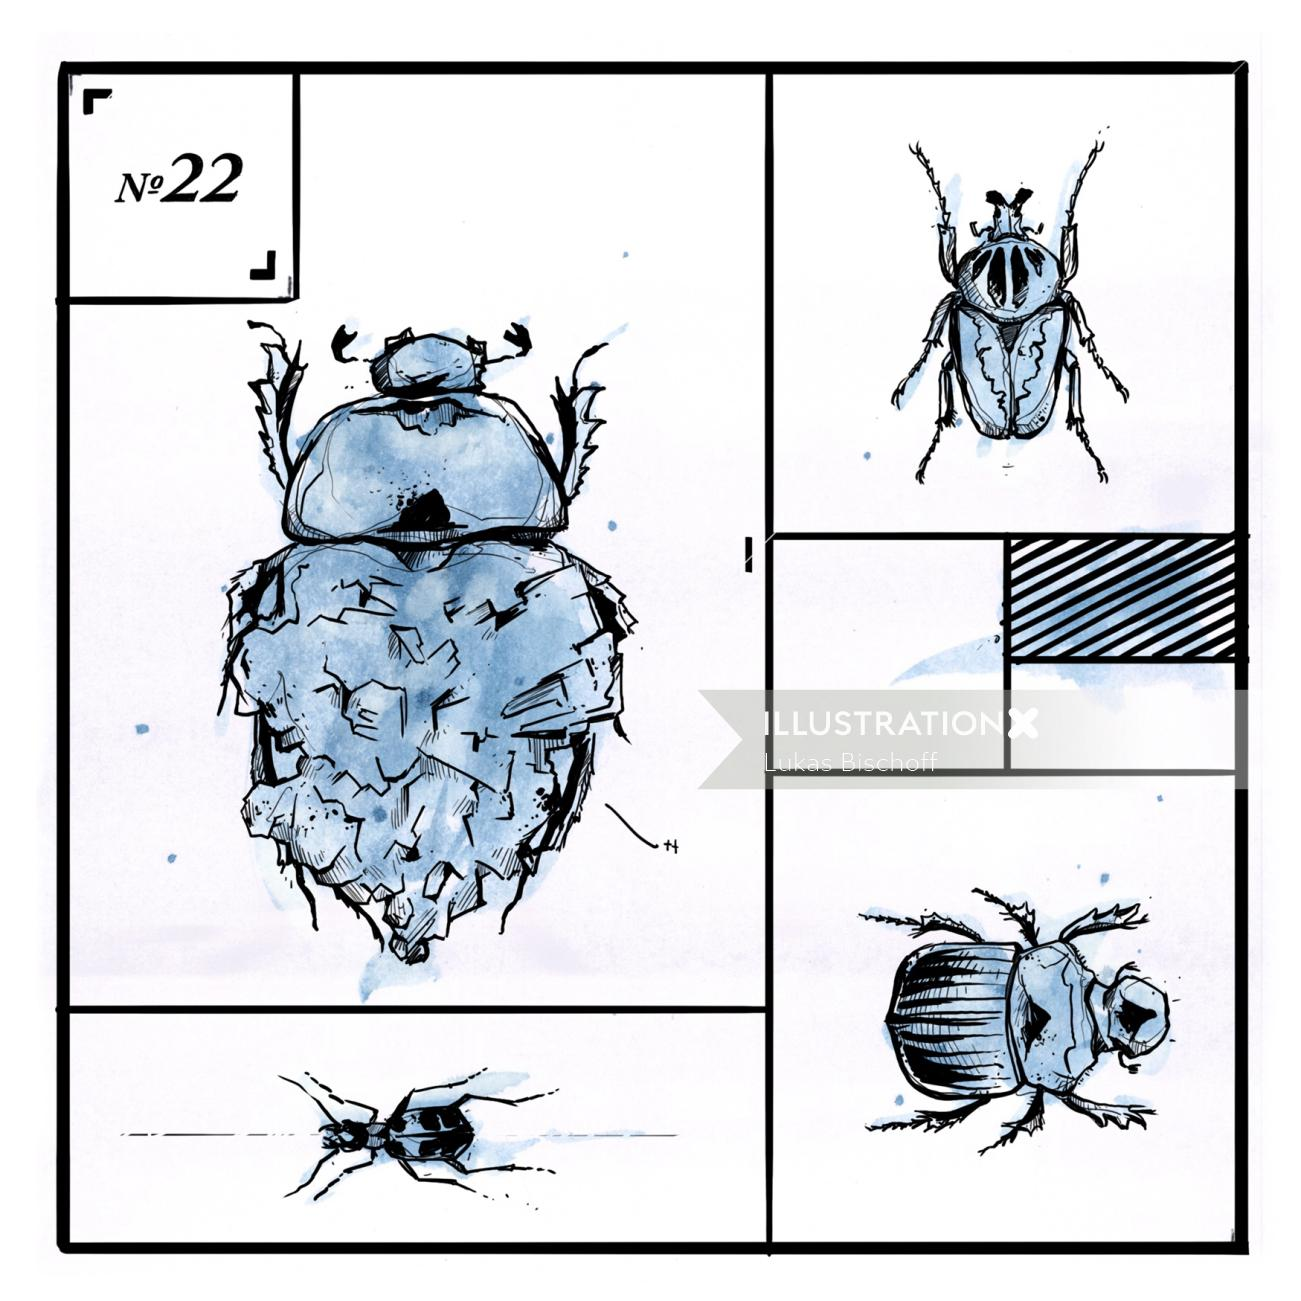 Loose animal illustration of bug